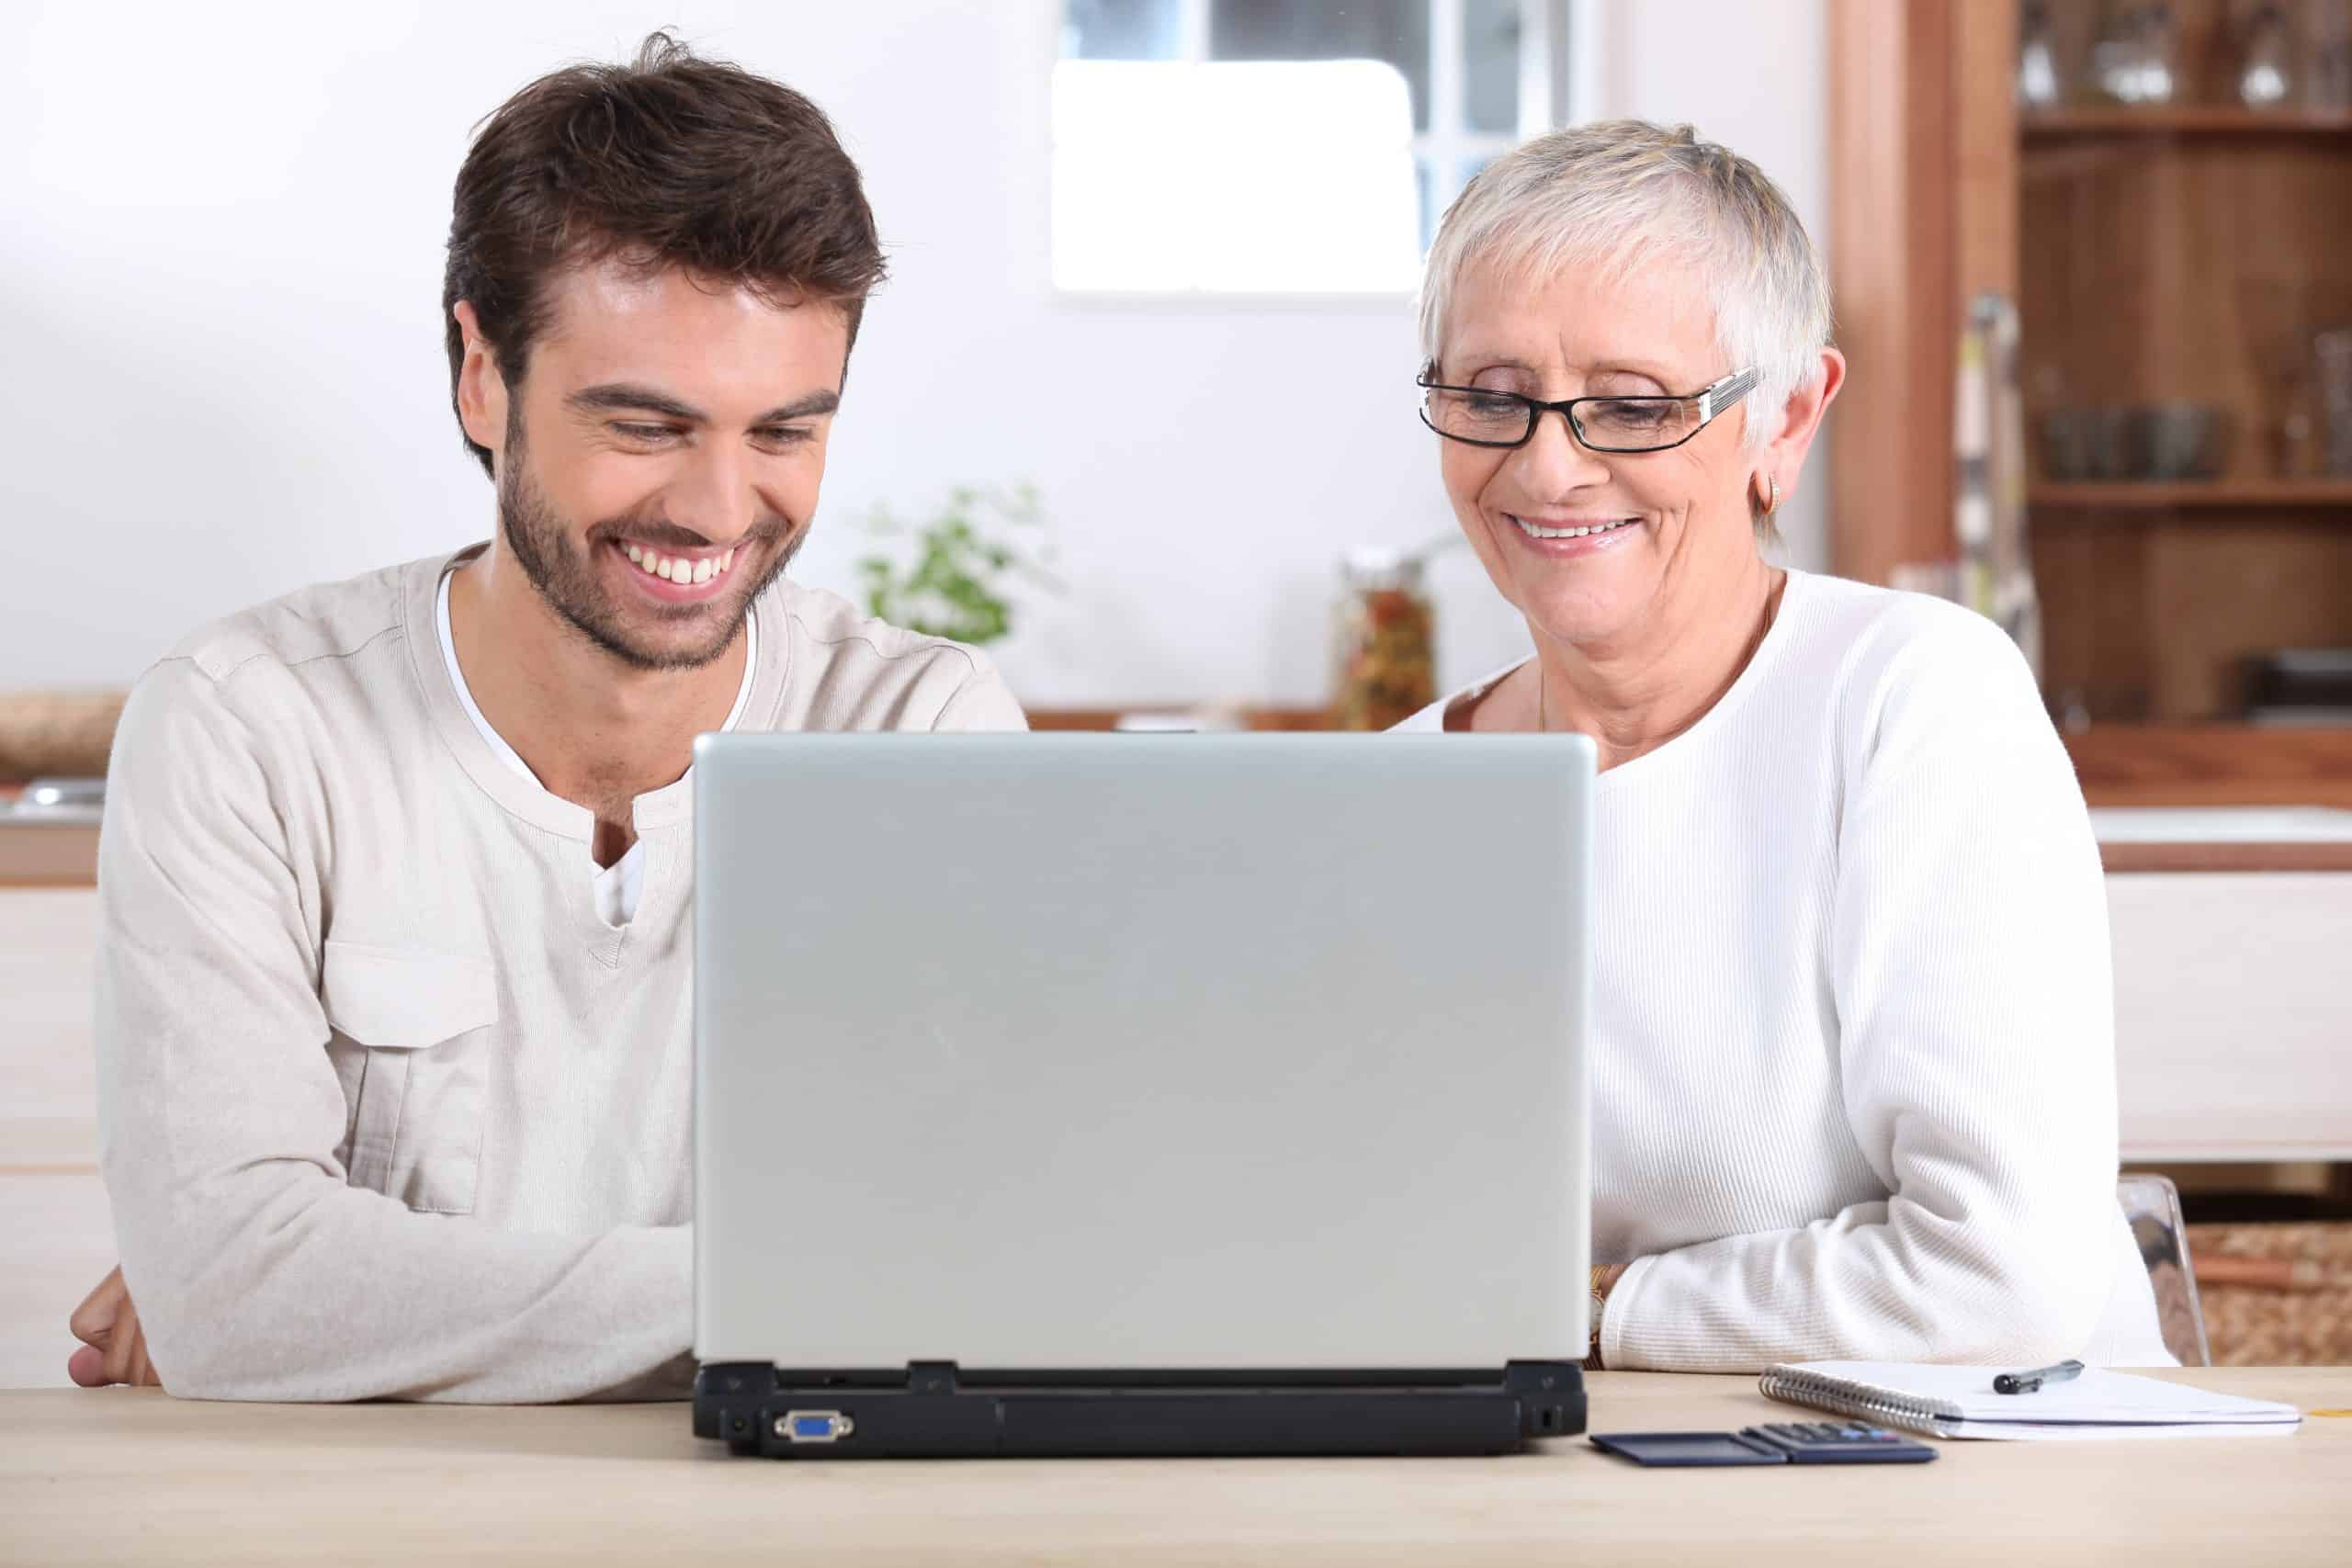 Free Mother's Day gifts - Young man and his mother using laptop